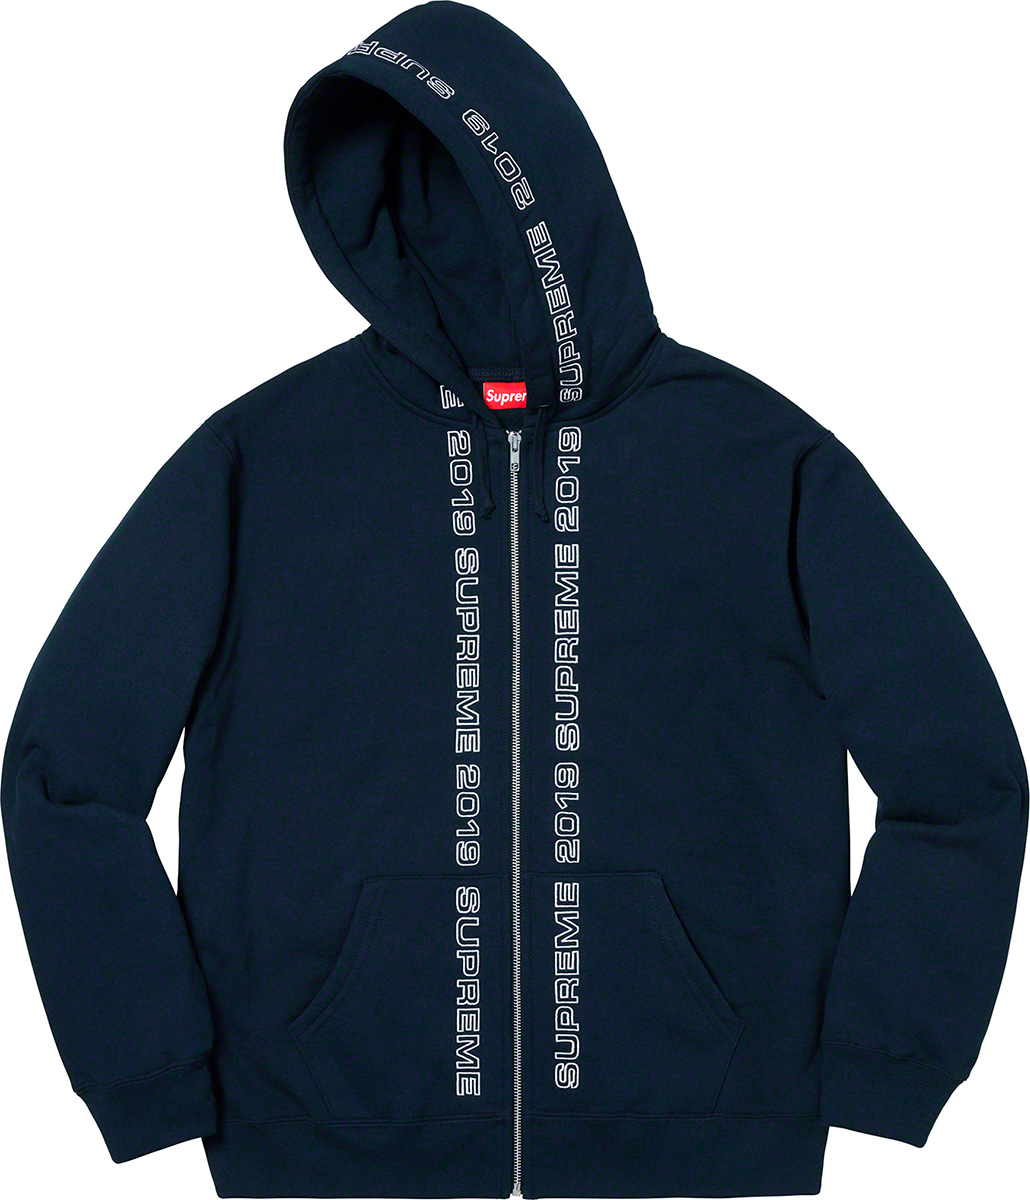 supreme-19ss-spring-summer-topline-zip-up-sweatshirt